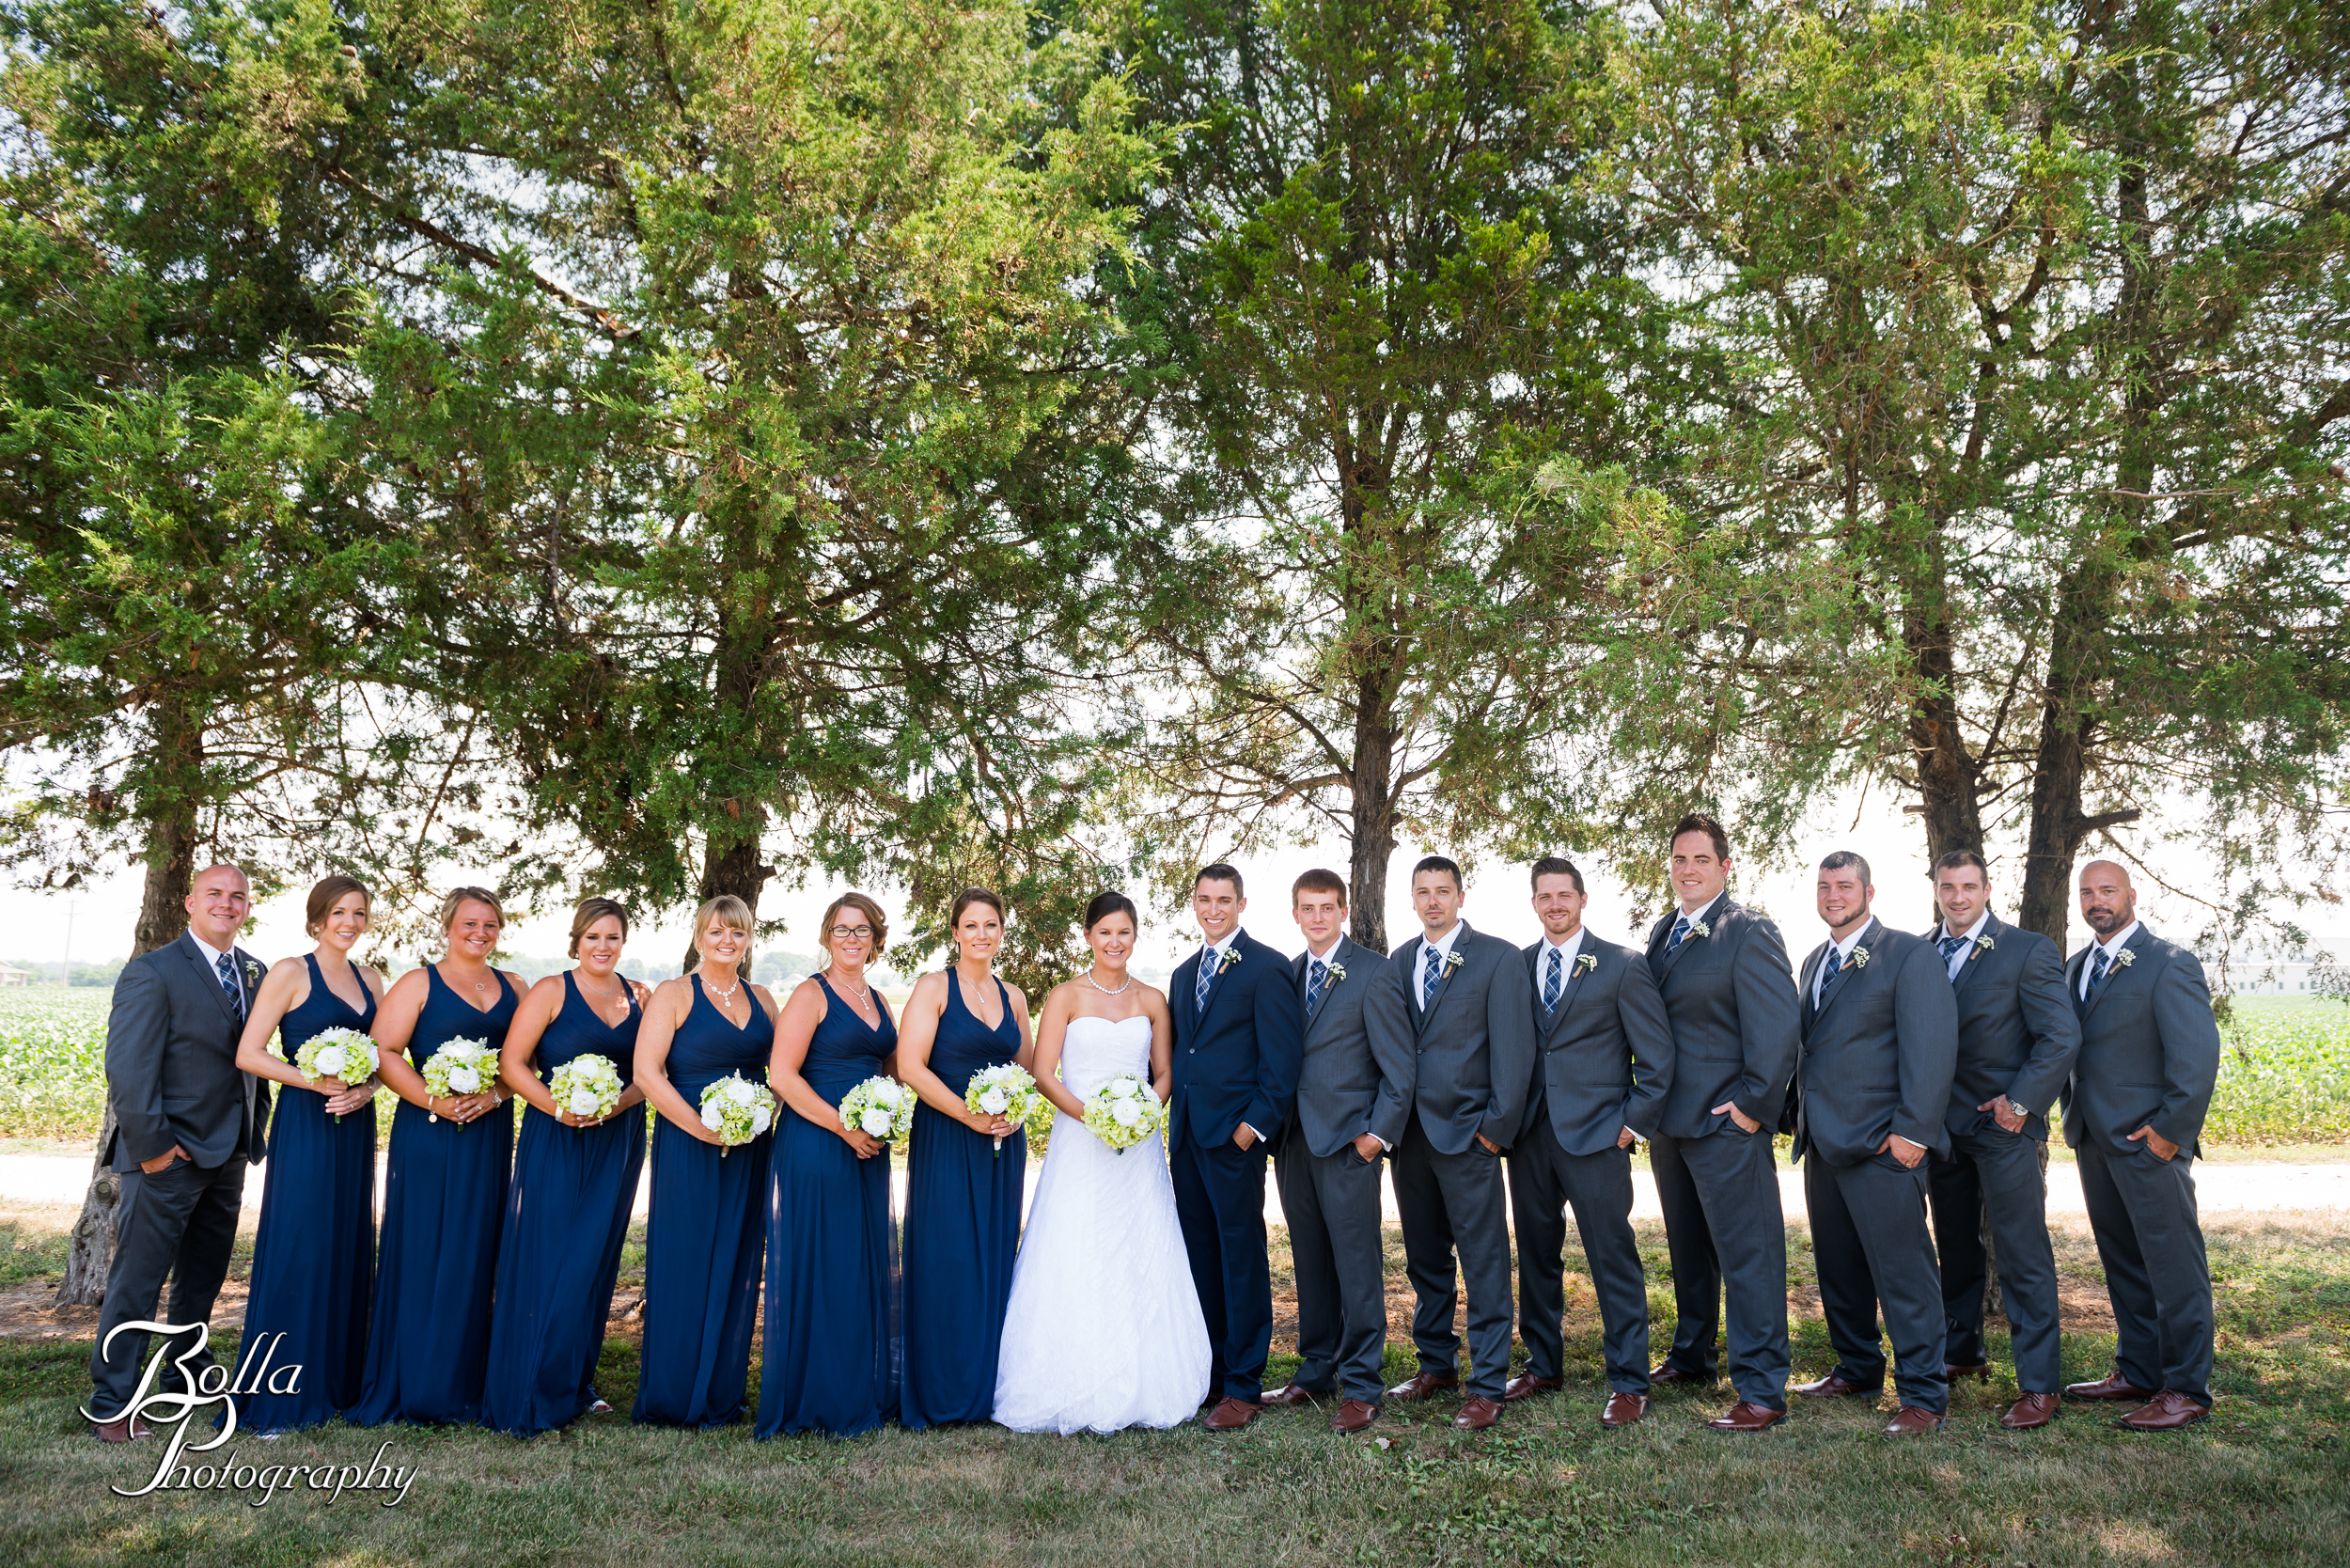 Bolla_photography_edwardsville_wedding_photographer_st_louis_weddings_Jessica_Barbachem_Dillon_Kaesberg_Waterloo_Red_Bud-0106.jpg